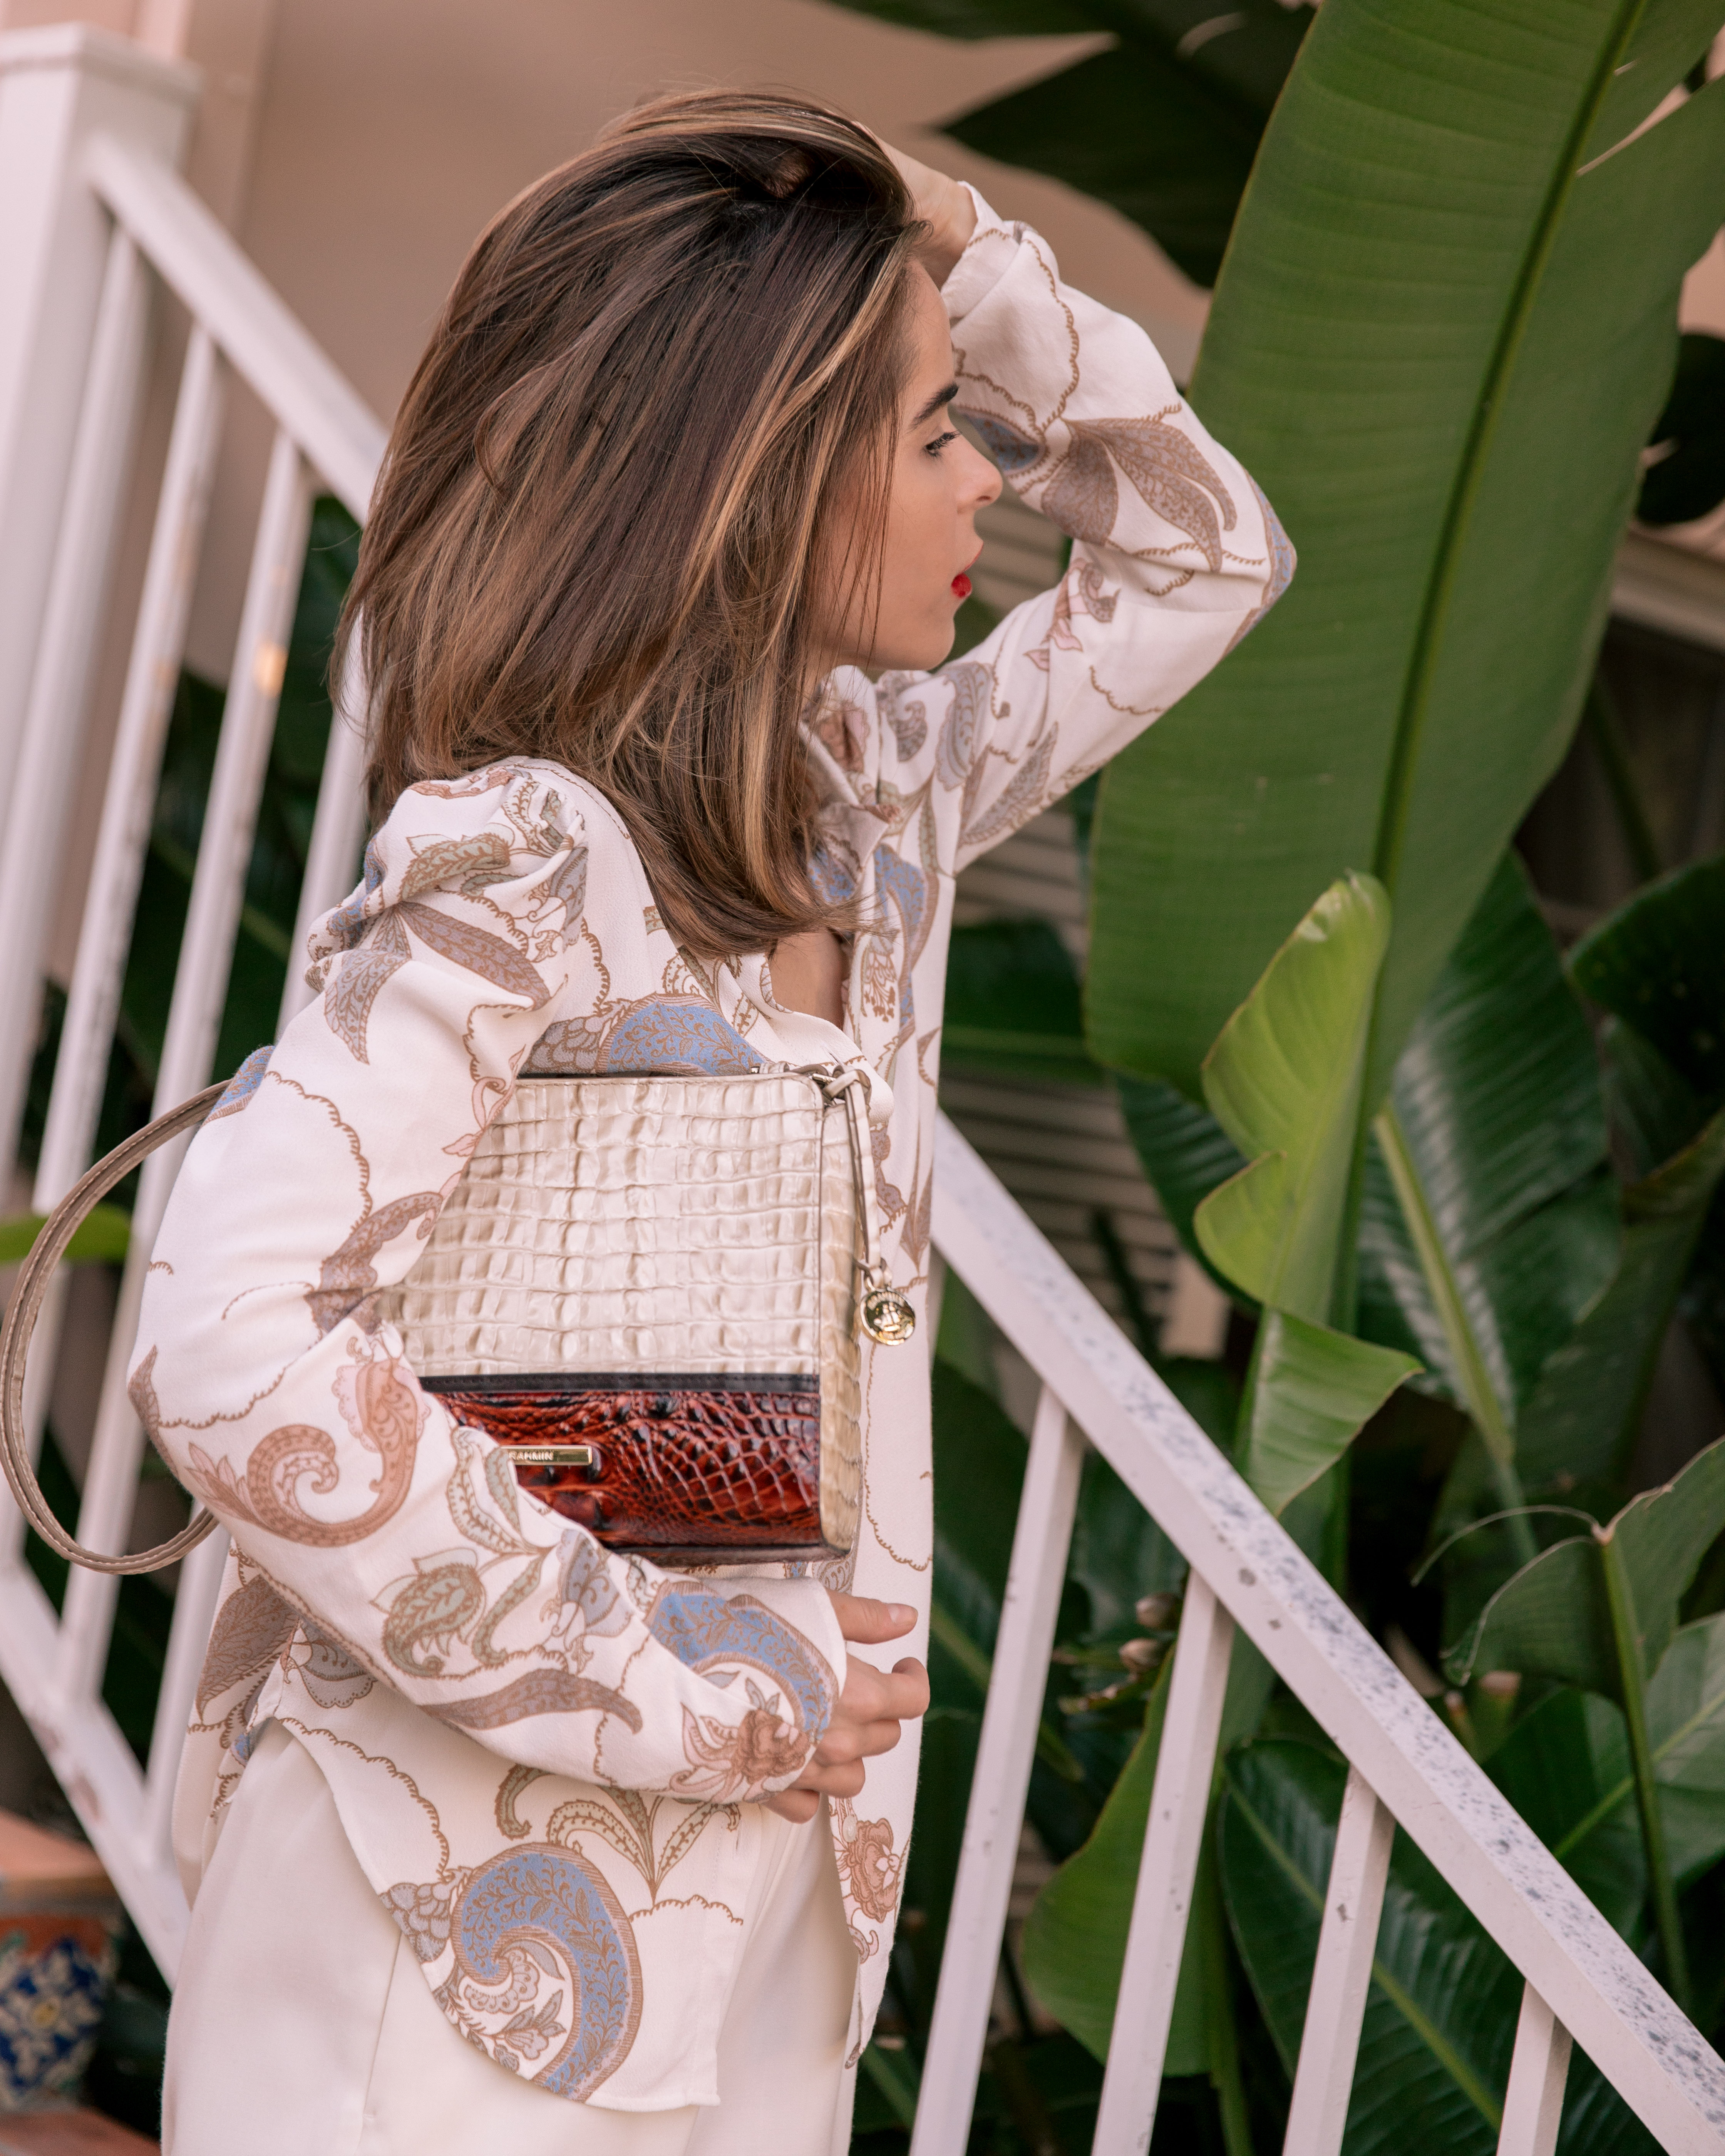 Stephanie Hill shares the 7 Expensive-Looking Handbags but Aren't on The Style Bungalow